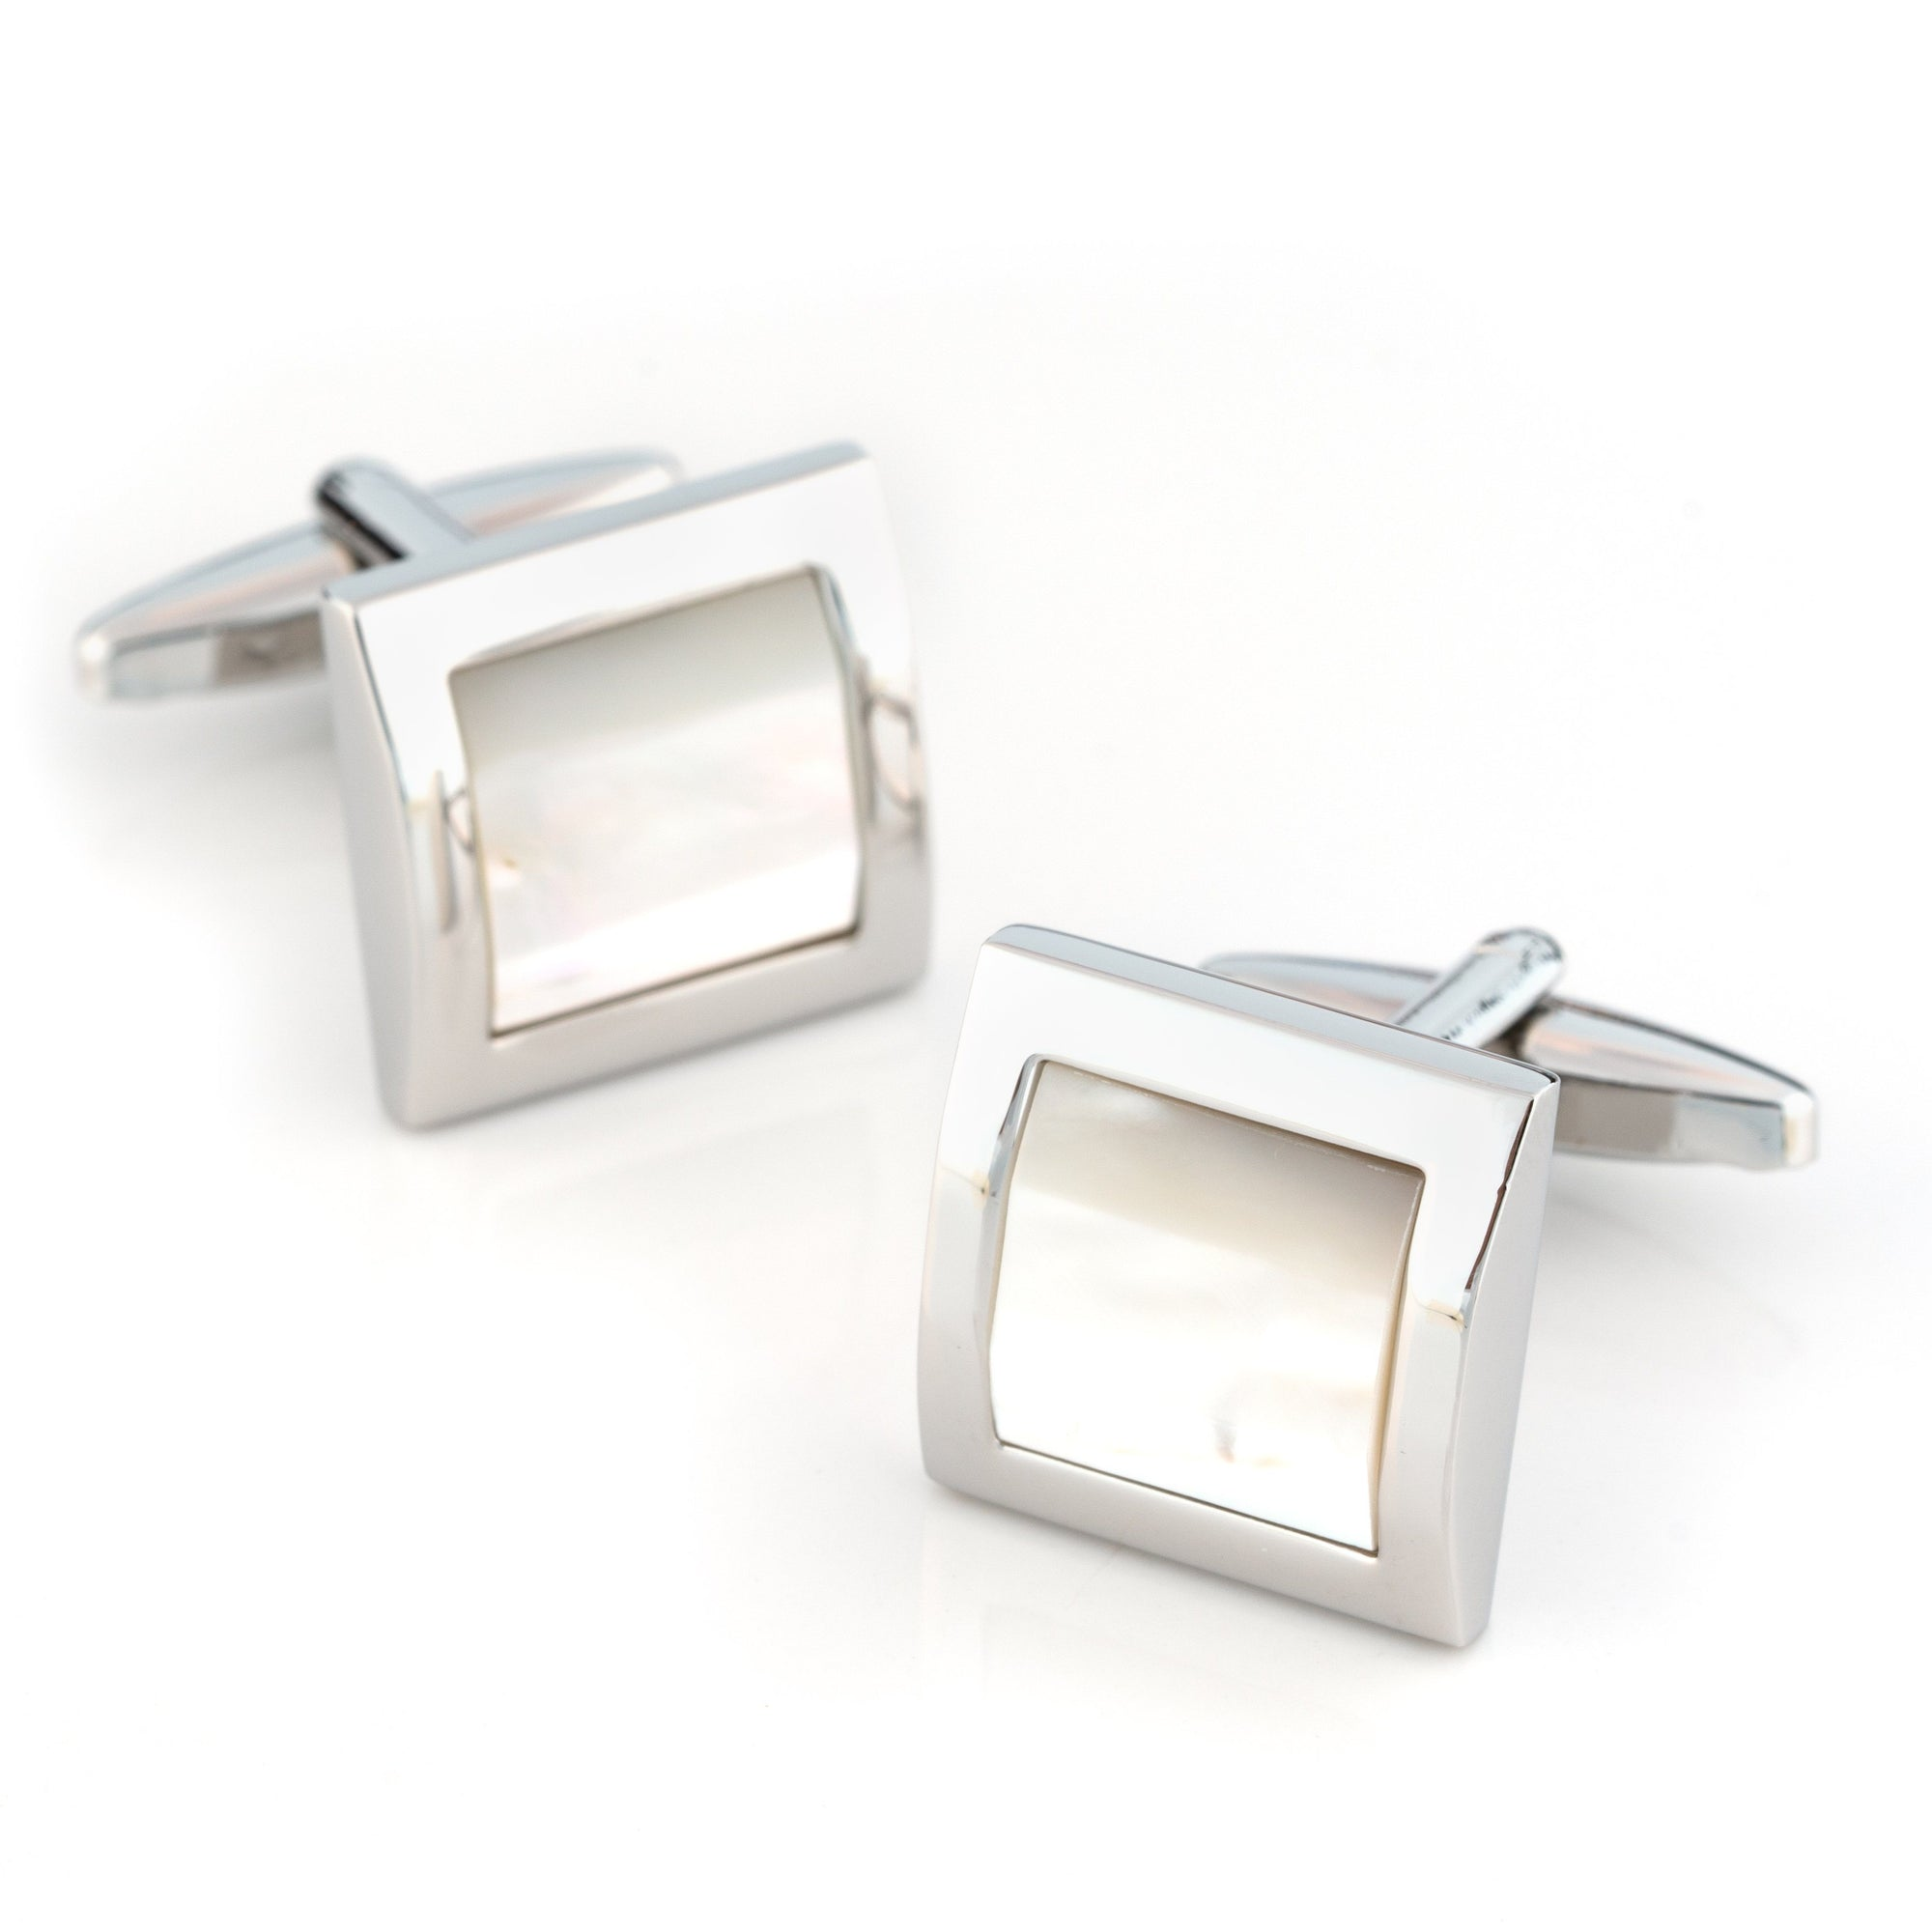 Mother of Pearl in Silver Square Cufflinks, Classic & Modern Cufflinks, Cuffed.com.au, CL2275, Classic & Modern Cufflinks, Mother of Pearl, Silver, Clinks Australia